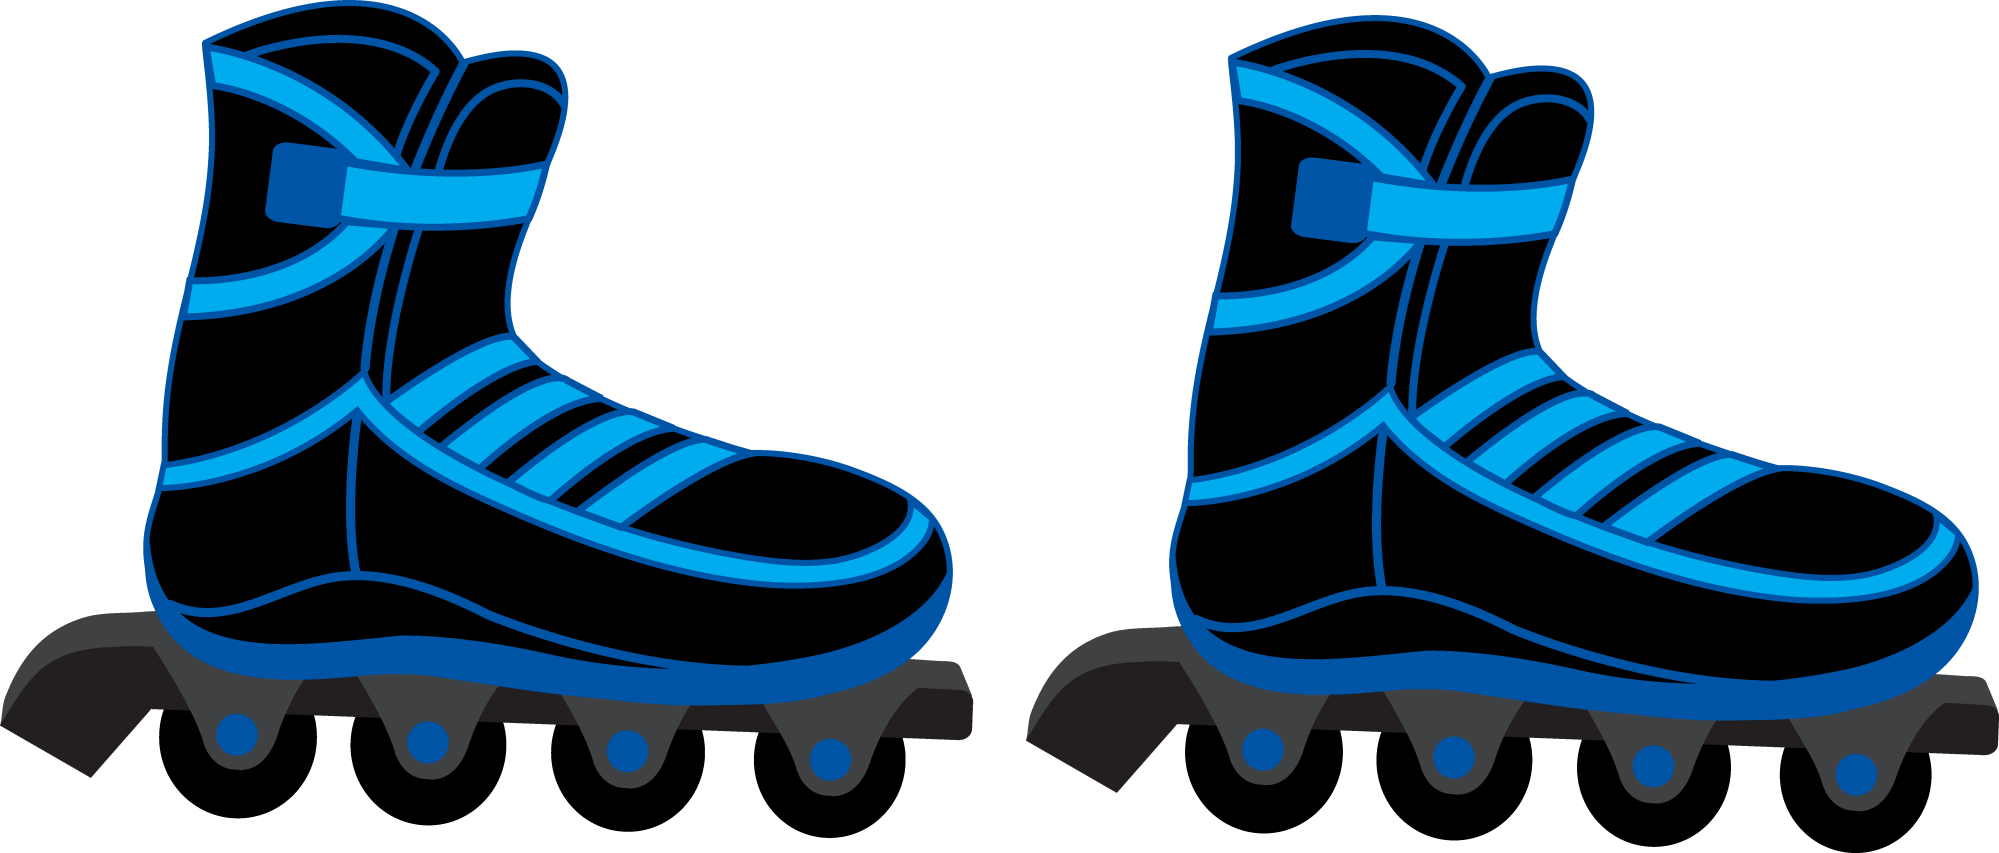 hight resolution of 450x413 clipart of retro style winged roller skate k5345130 8272x3530 cool blue and black rollerblades